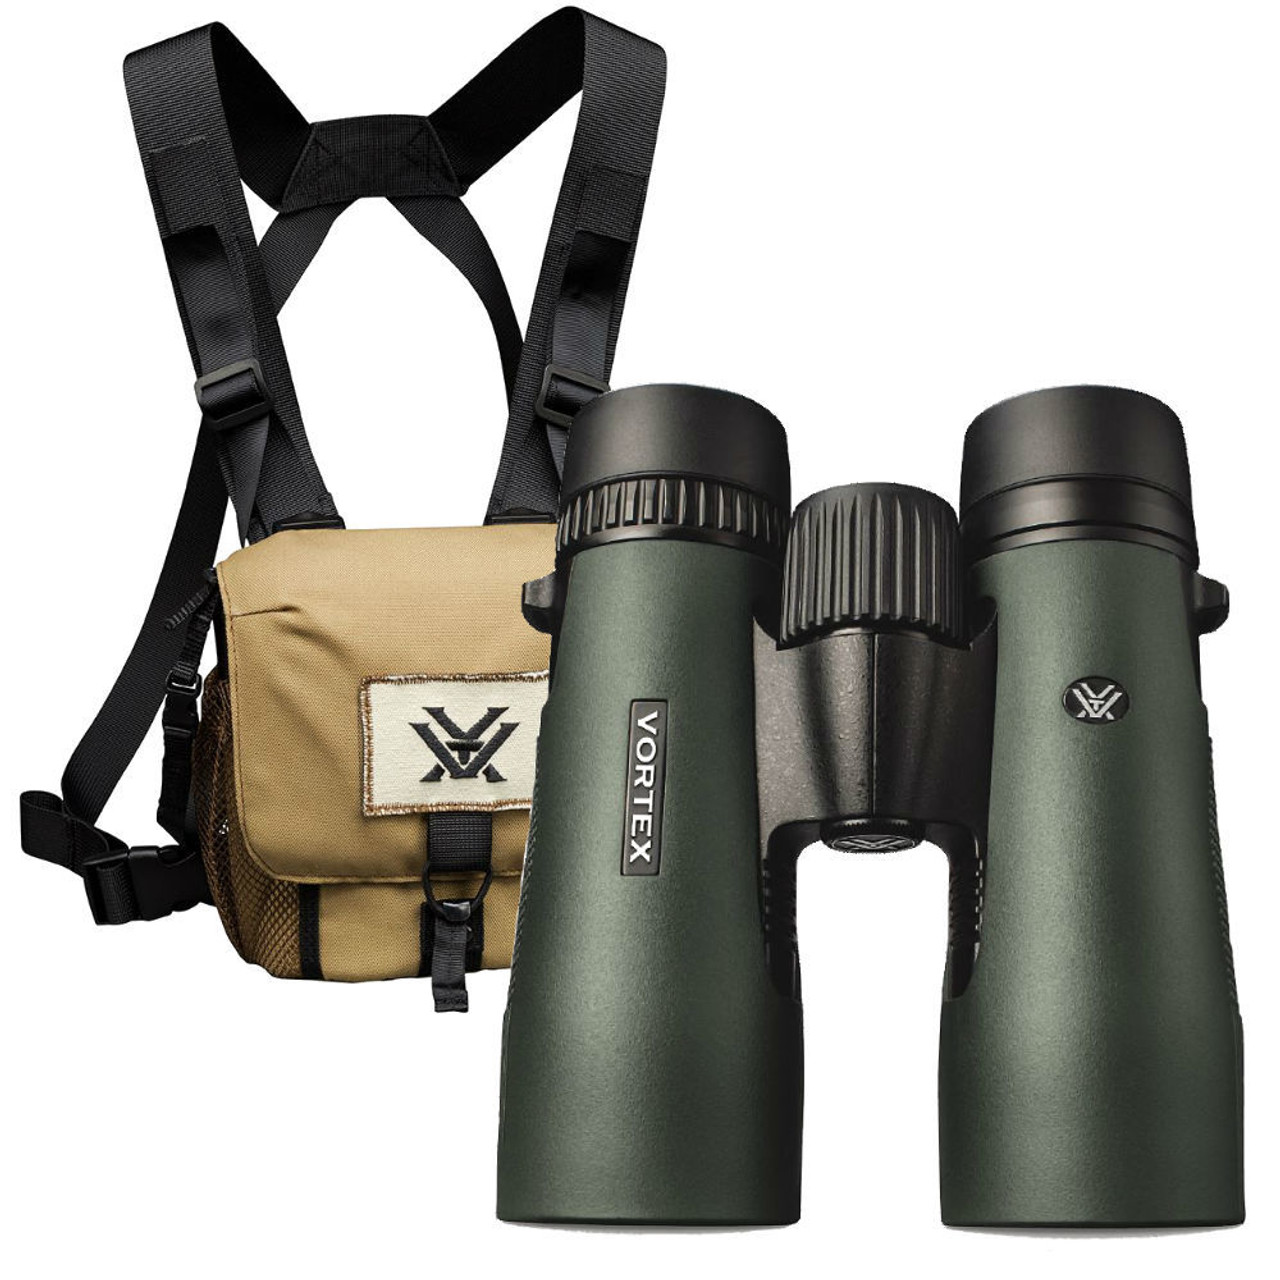 2019 Vortex Diamondback HD 8x42 Binocular DB-214